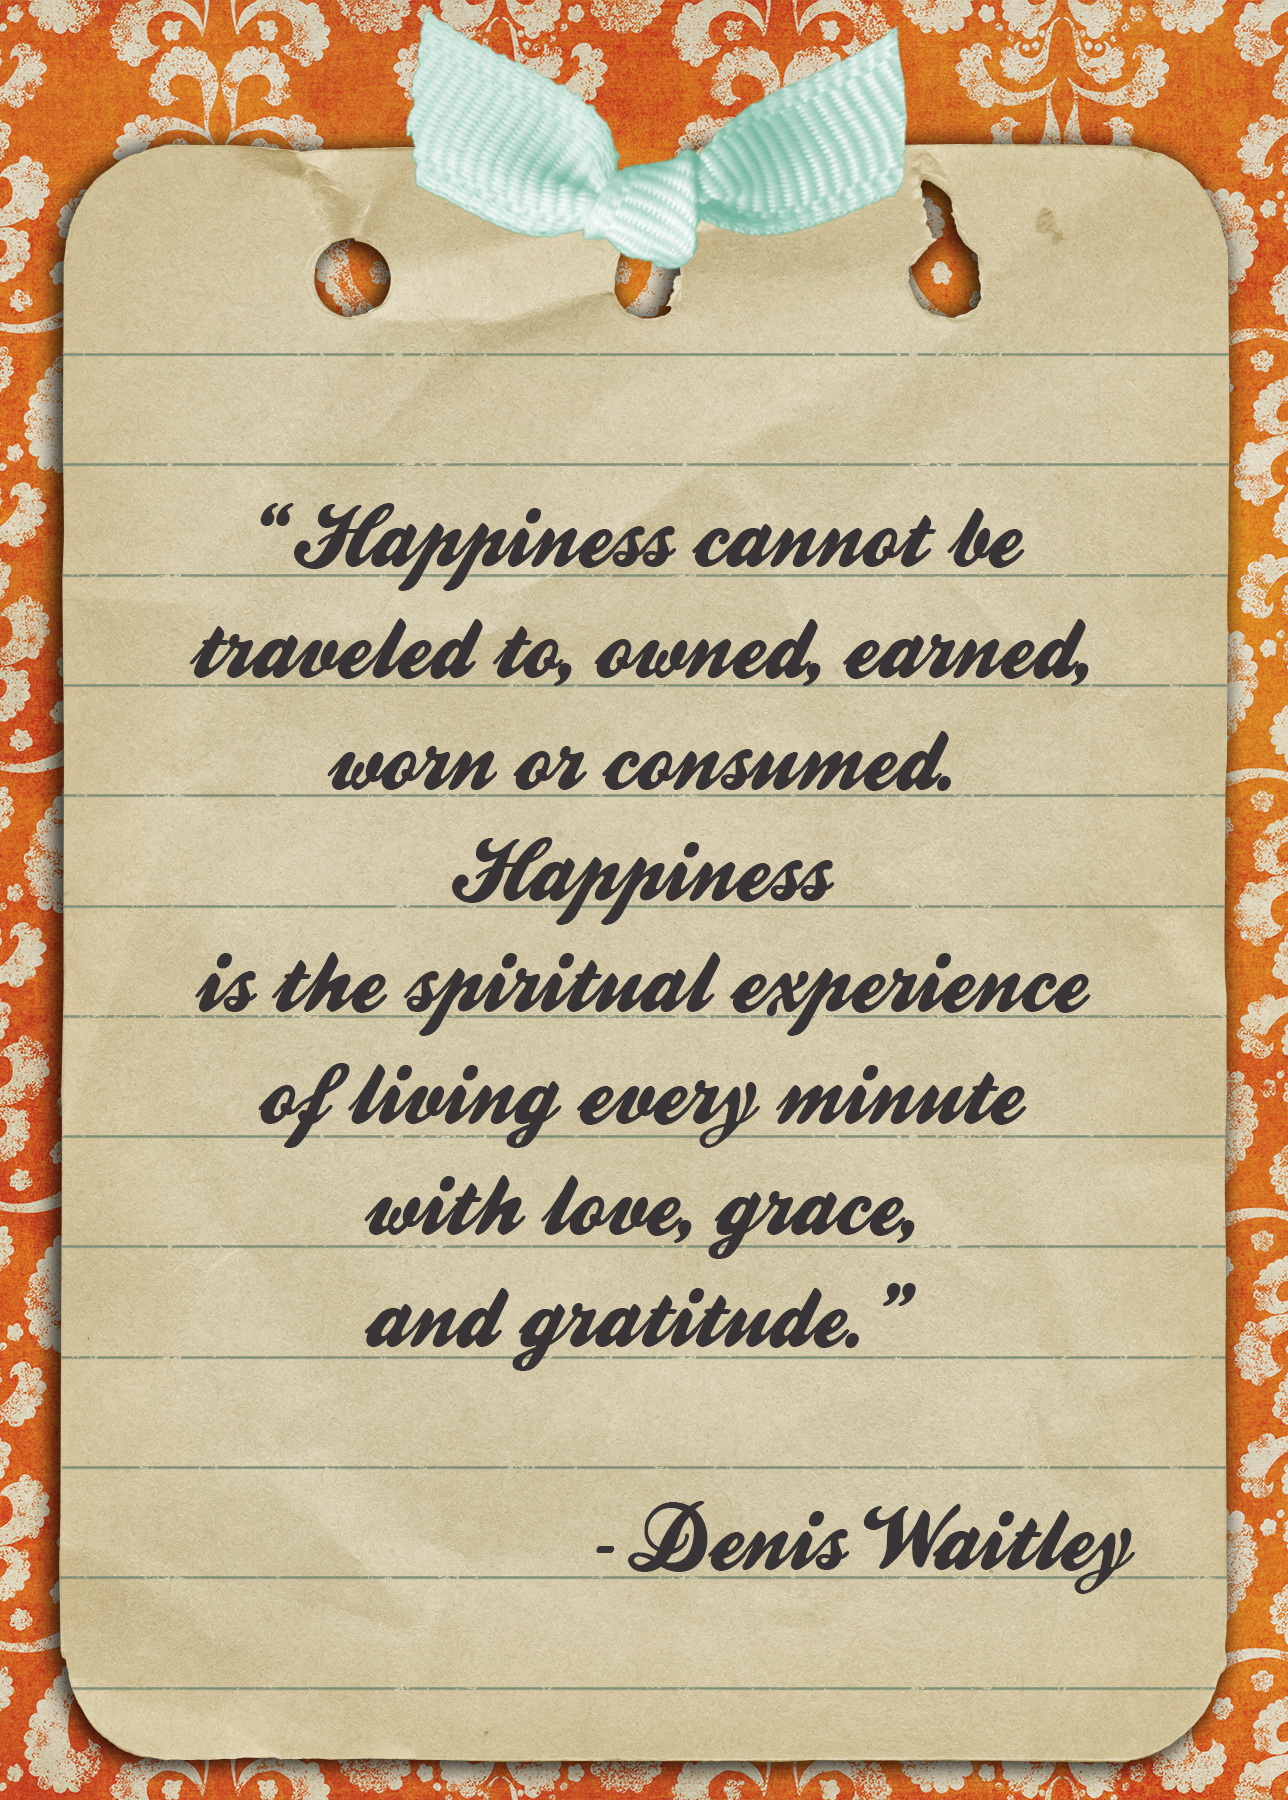 Quote of the Day: Hunt For Happiness Week Day 2